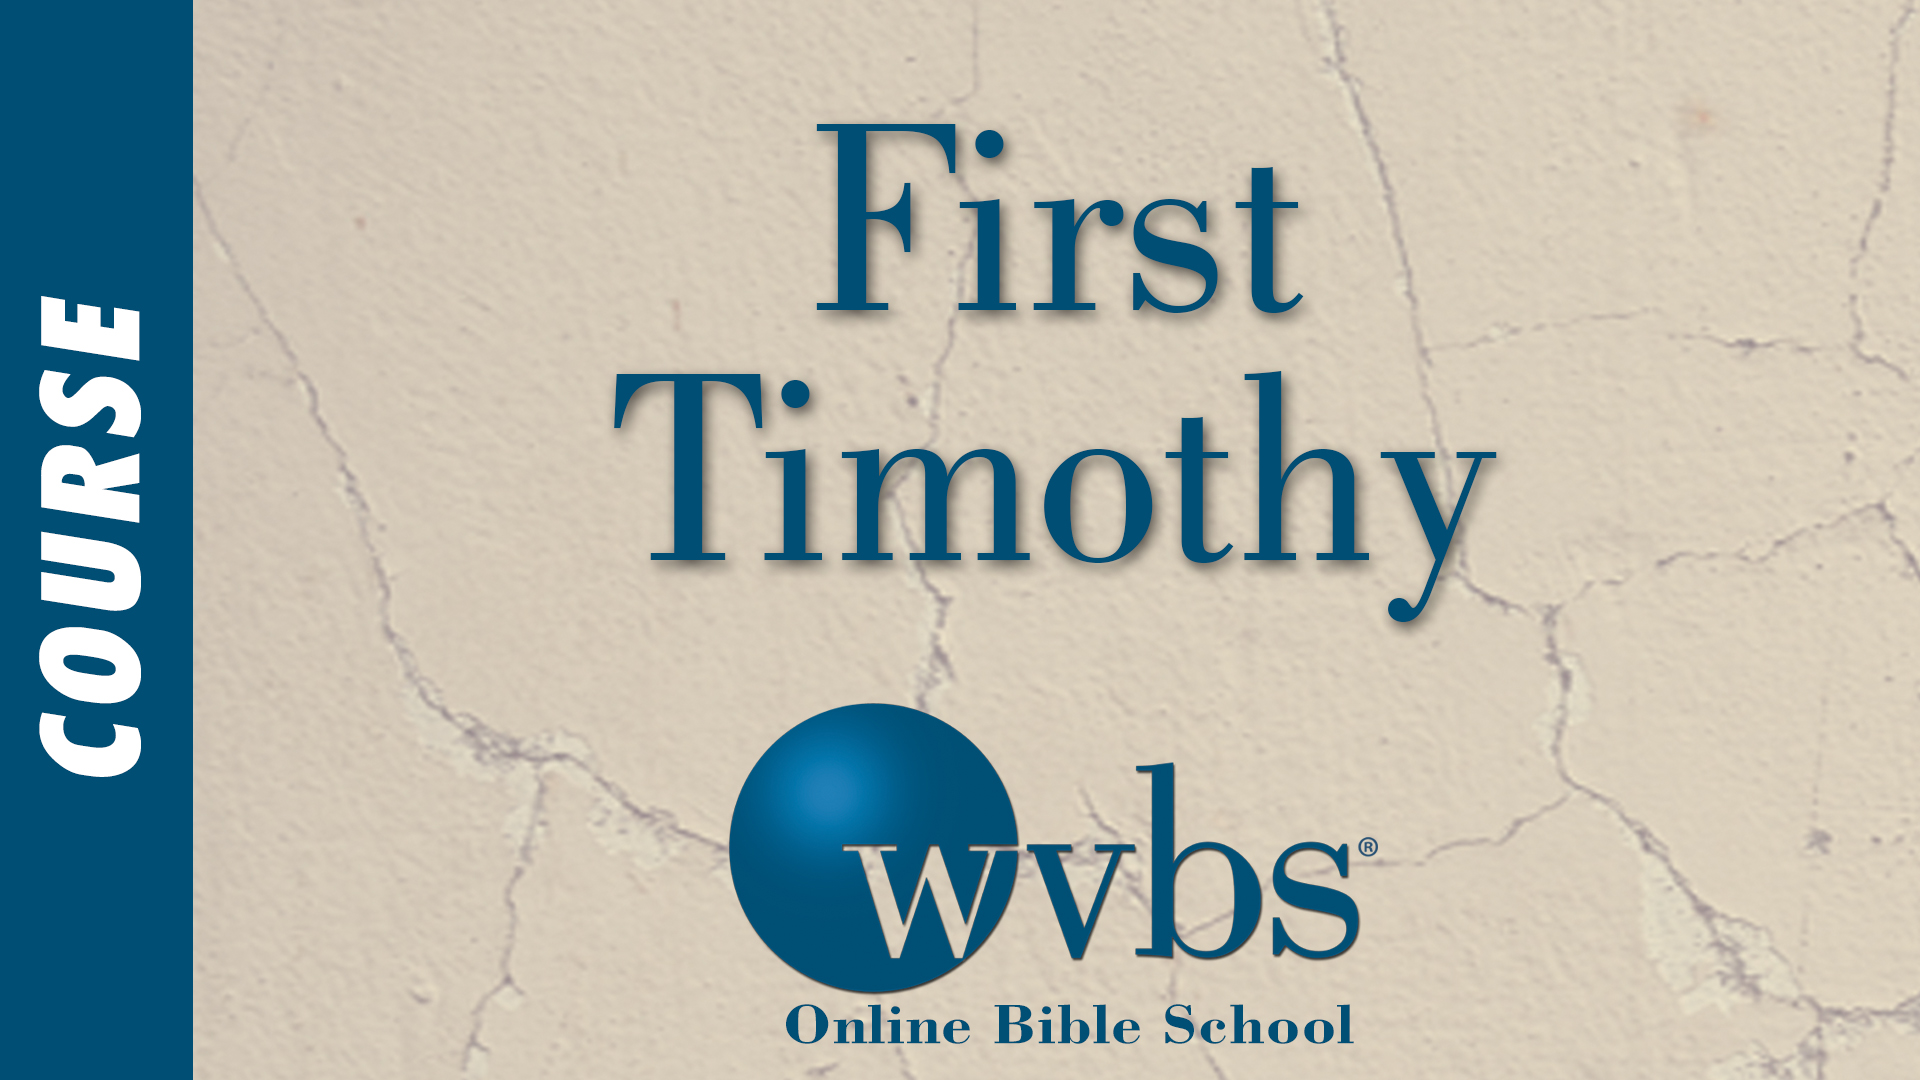 First Timothy (Online Bible School)